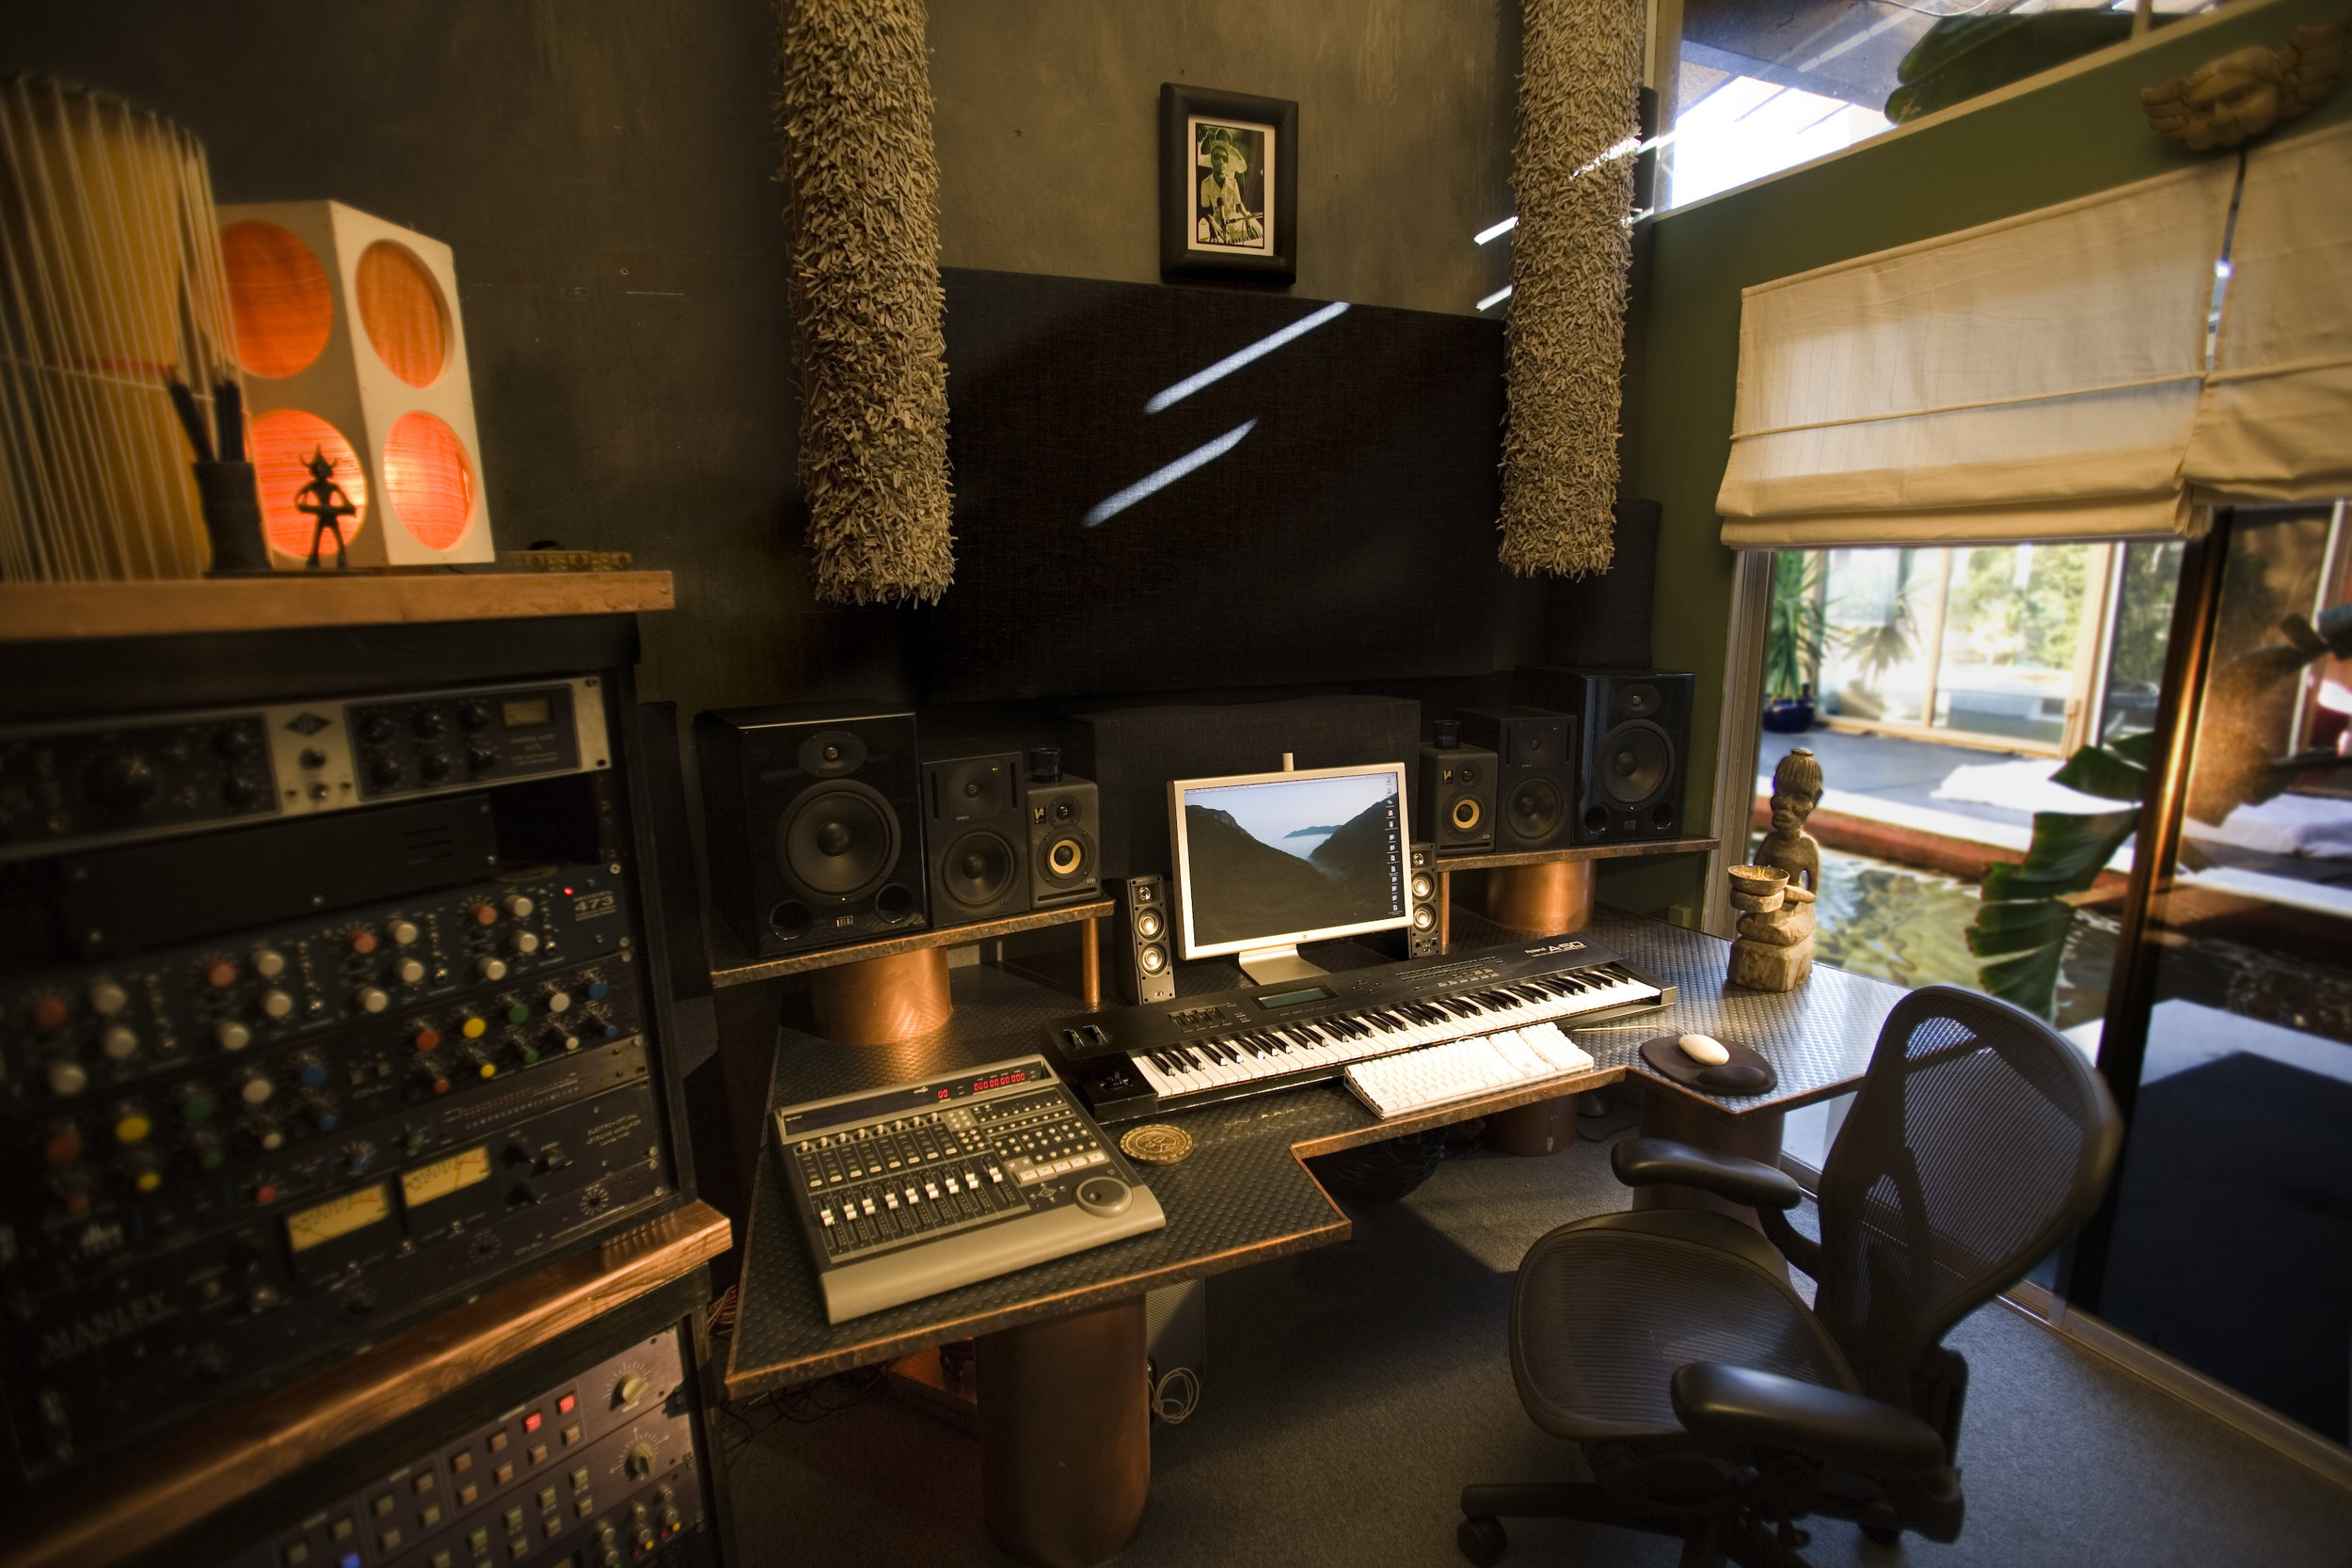 MusicyardMalibu studio1 - Stephen's first studio in Malibu was built in one of the rooms in the house facing the pool, also with an ocean view.For several years he churned out numerous projects from this space. Later he would expand and build Studio 2 in the basement of the house to facilitate recording full band set ups.